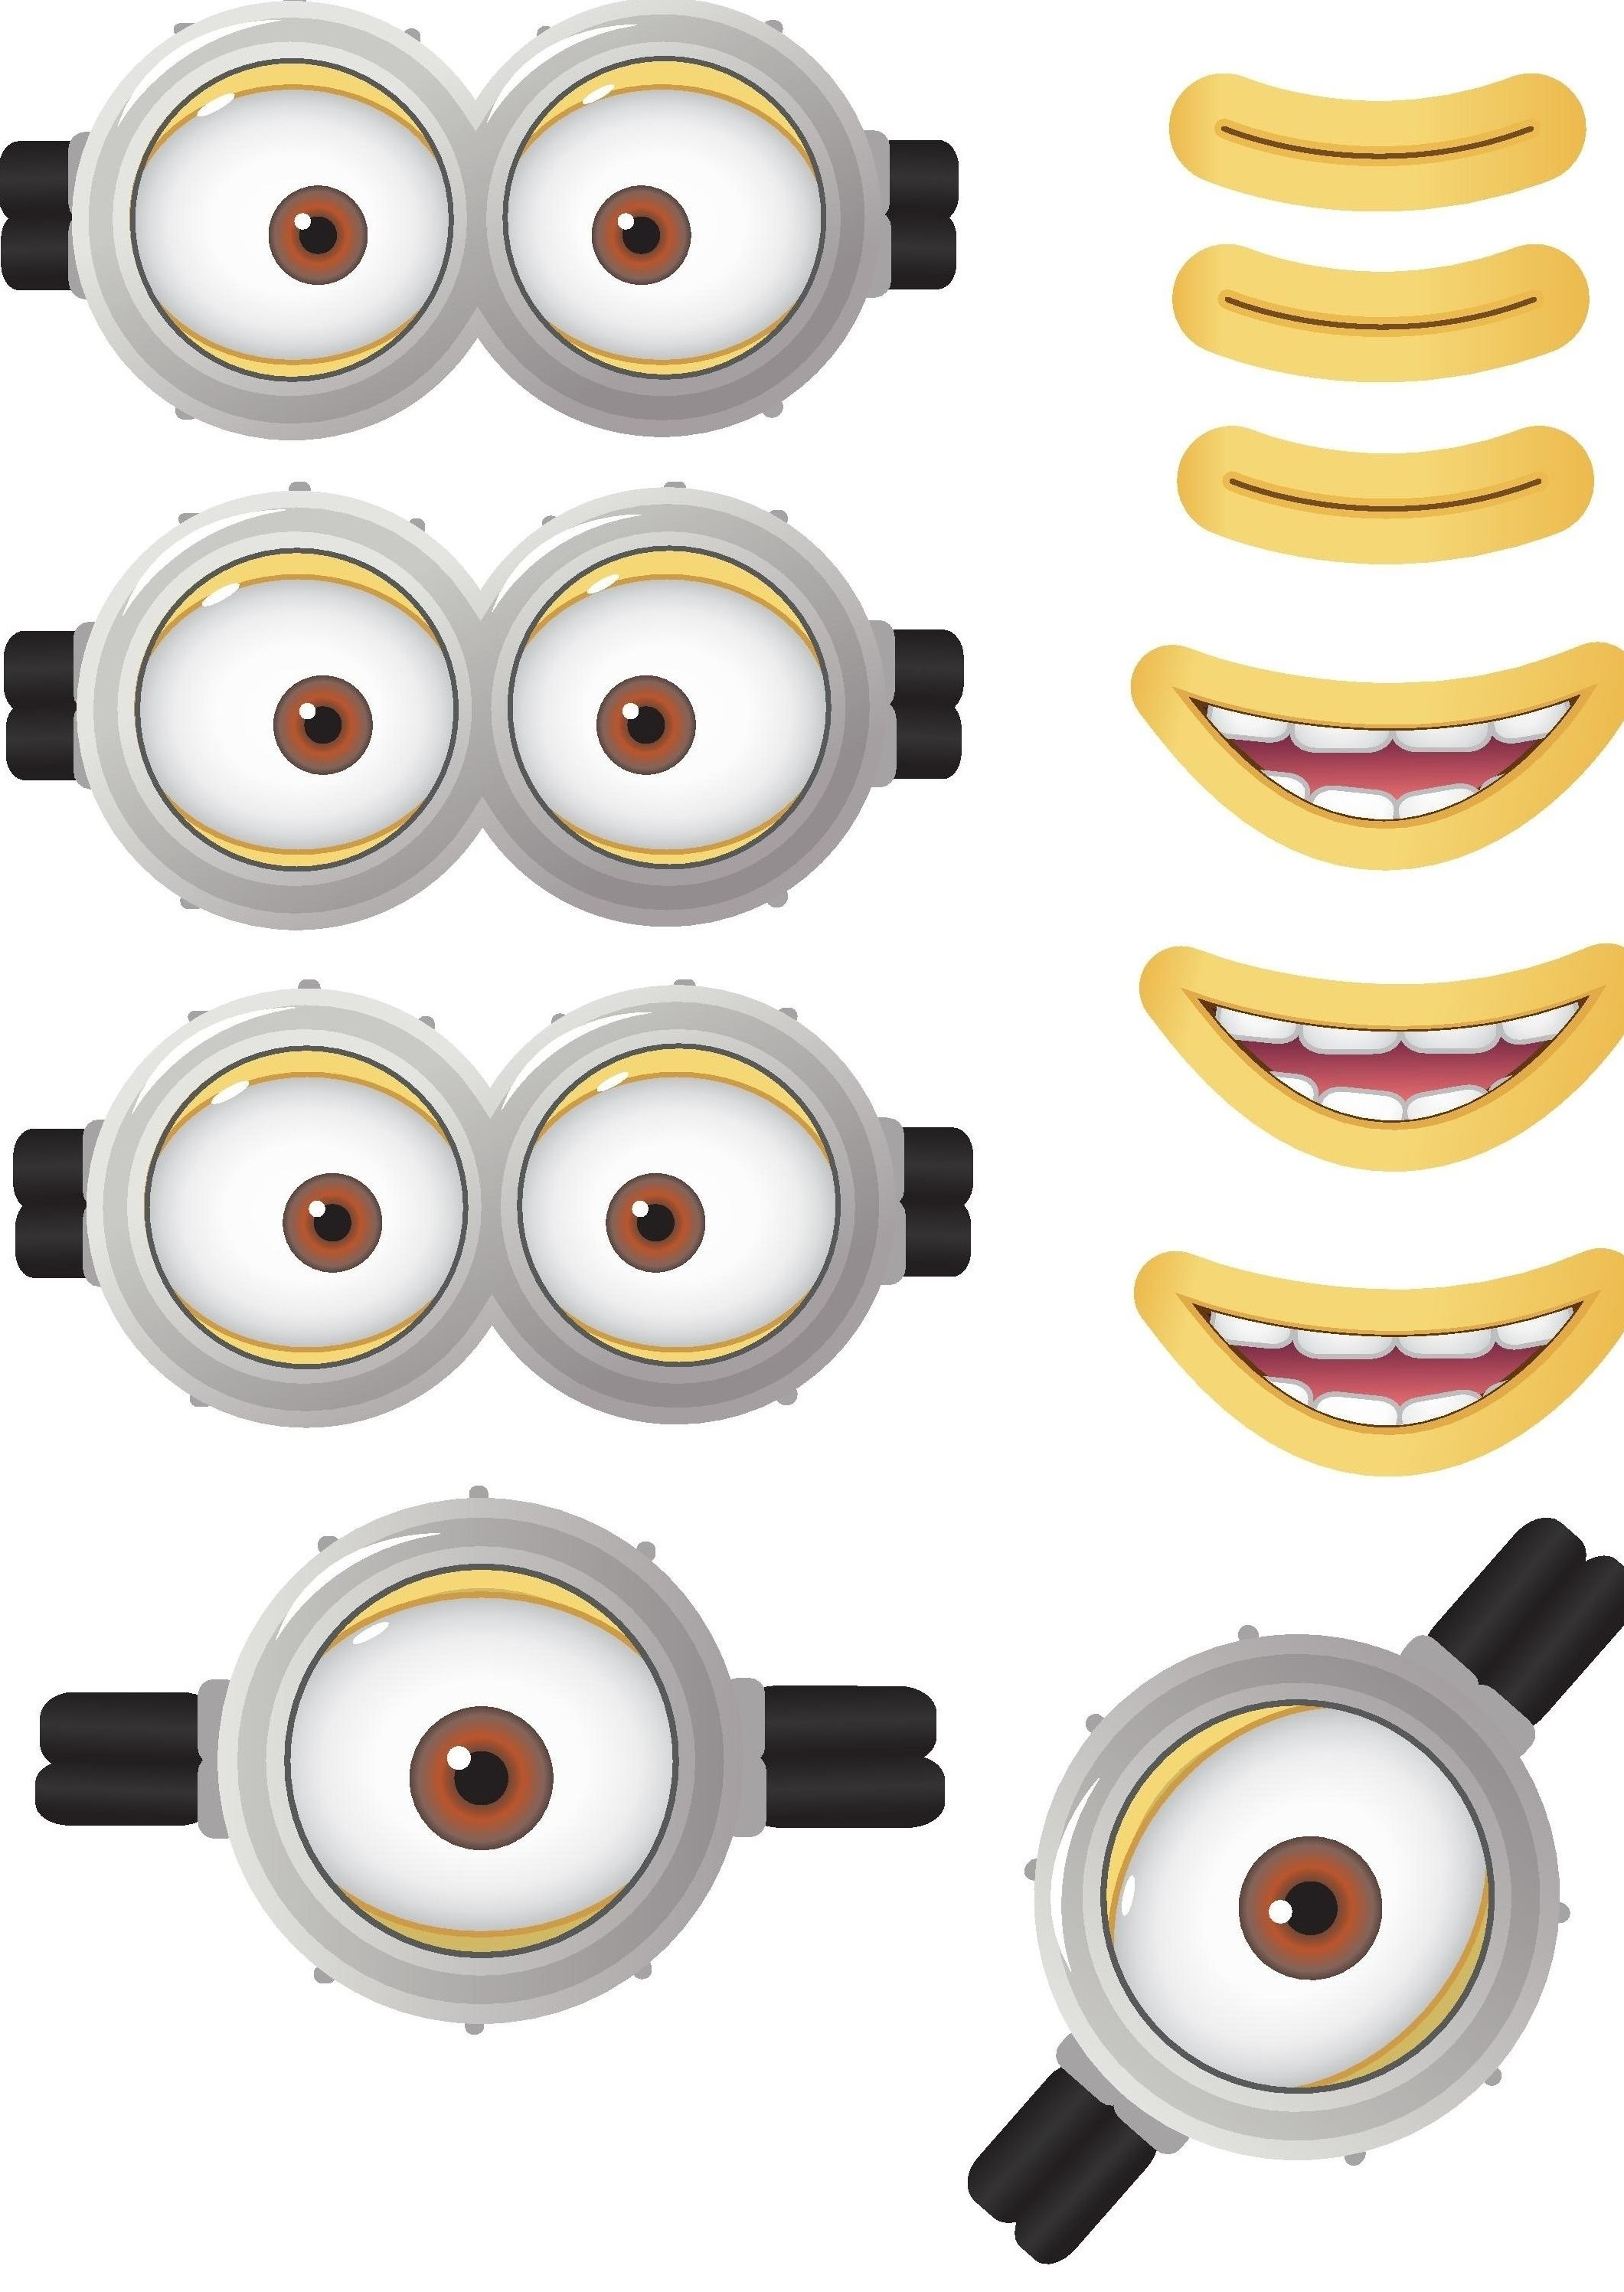 photo regarding Minion Goggle Printable identify Minion Goggles Mouths Totally free Printable Despicable Me 2 Envision